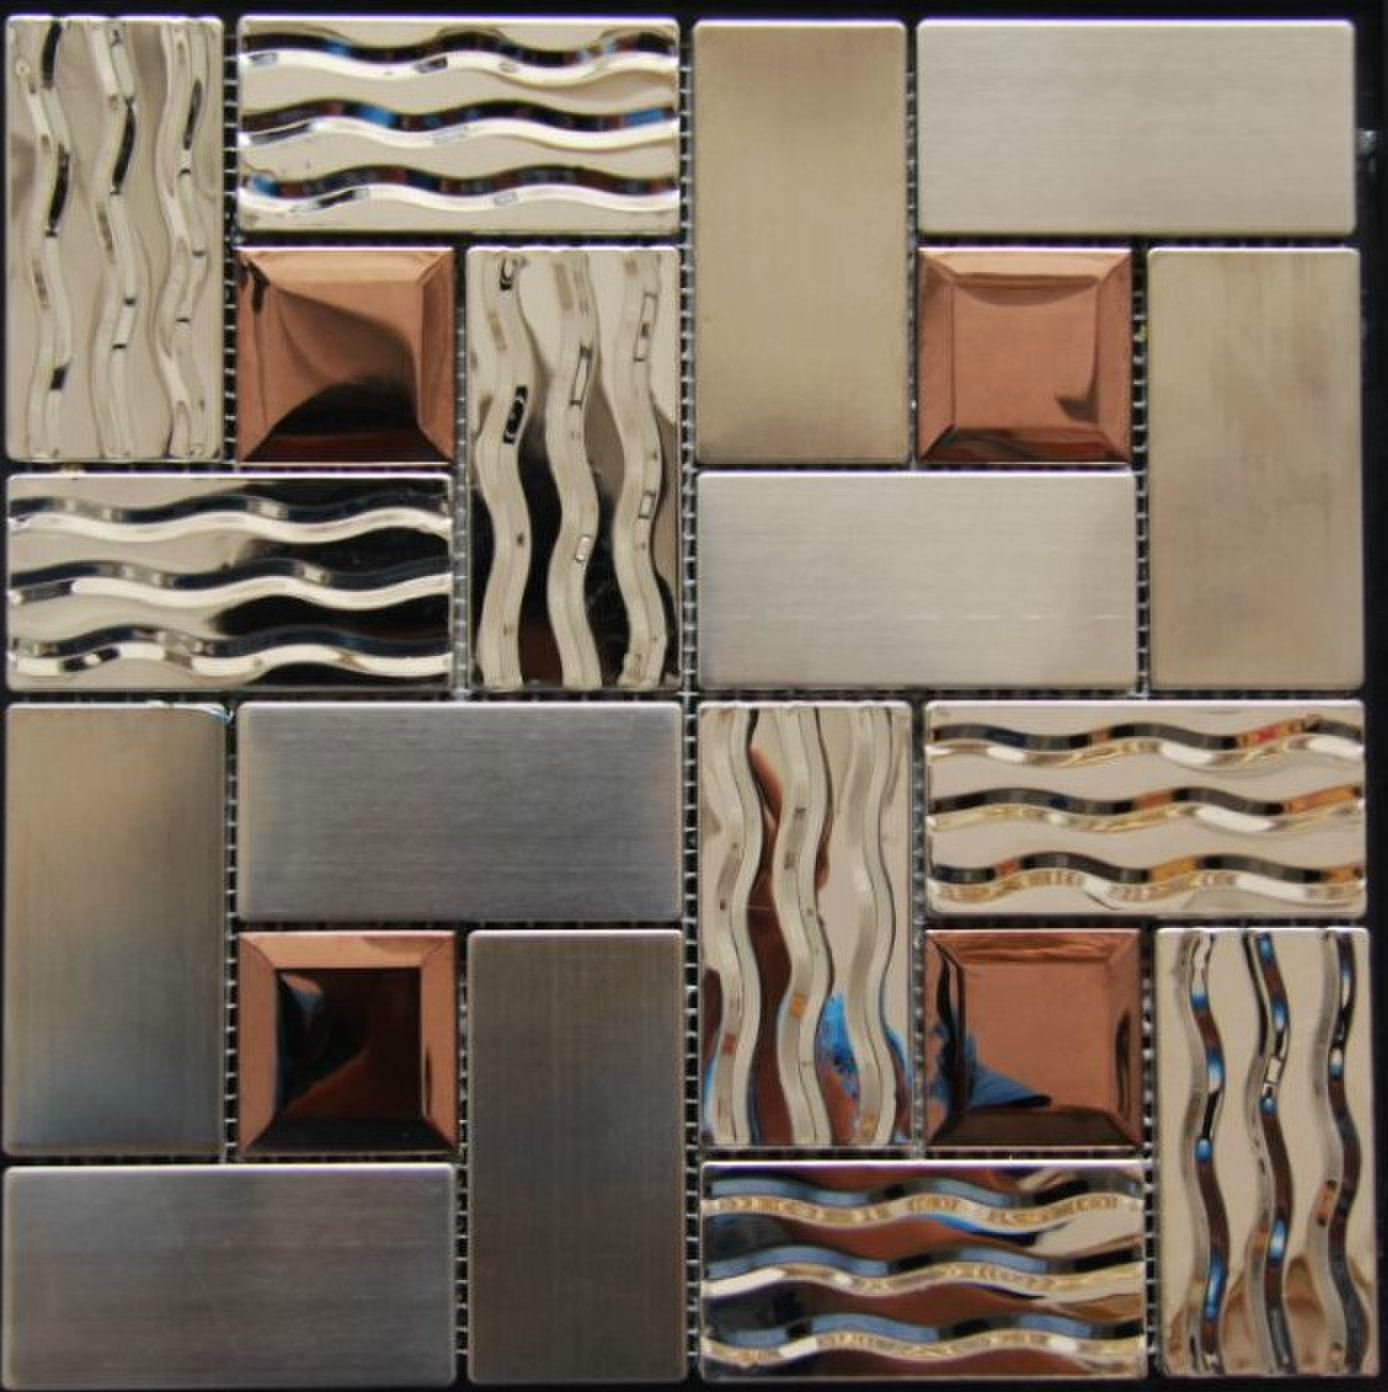 Stainless steel tile backsplash ssmt269 kitchen mosaic glass wall online buy glass metal mosaic tiles for kitchen backsplash bathroom wall flooring remolding at factory wholesale price huge selection of glass mosaic dailygadgetfo Choice Image